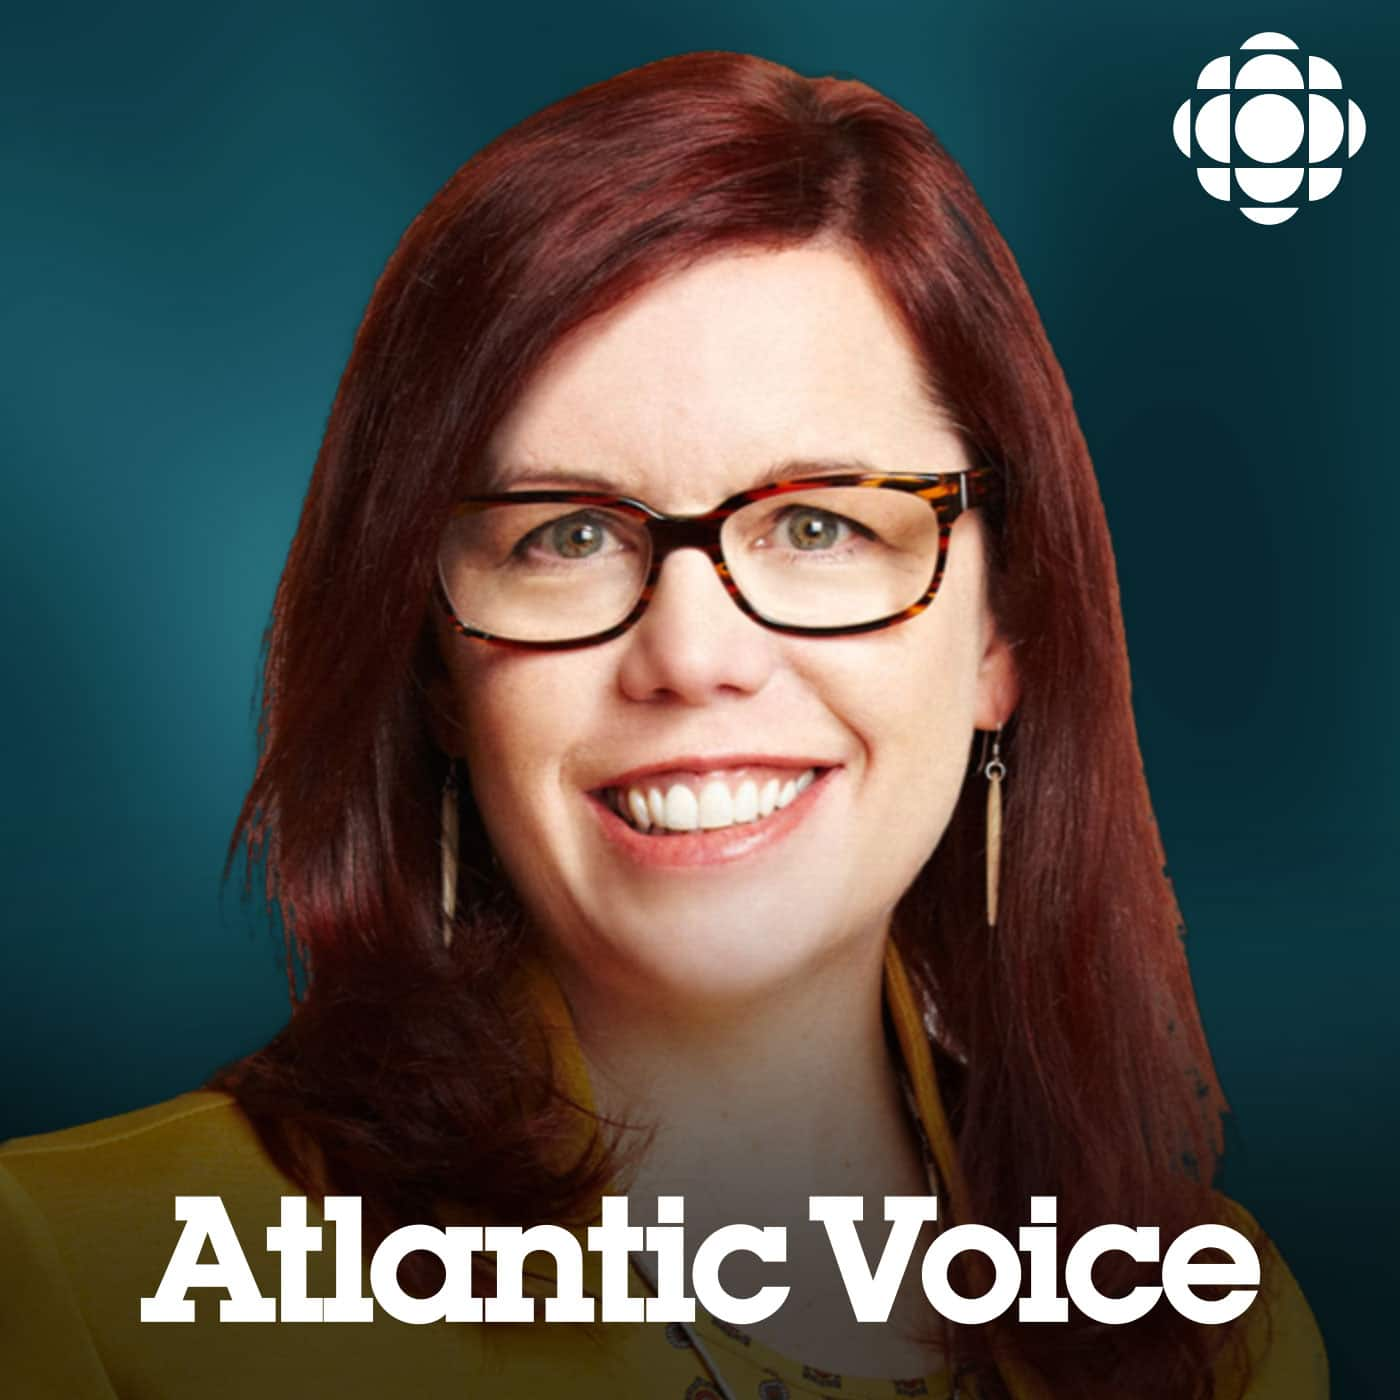 Atlantic Voice